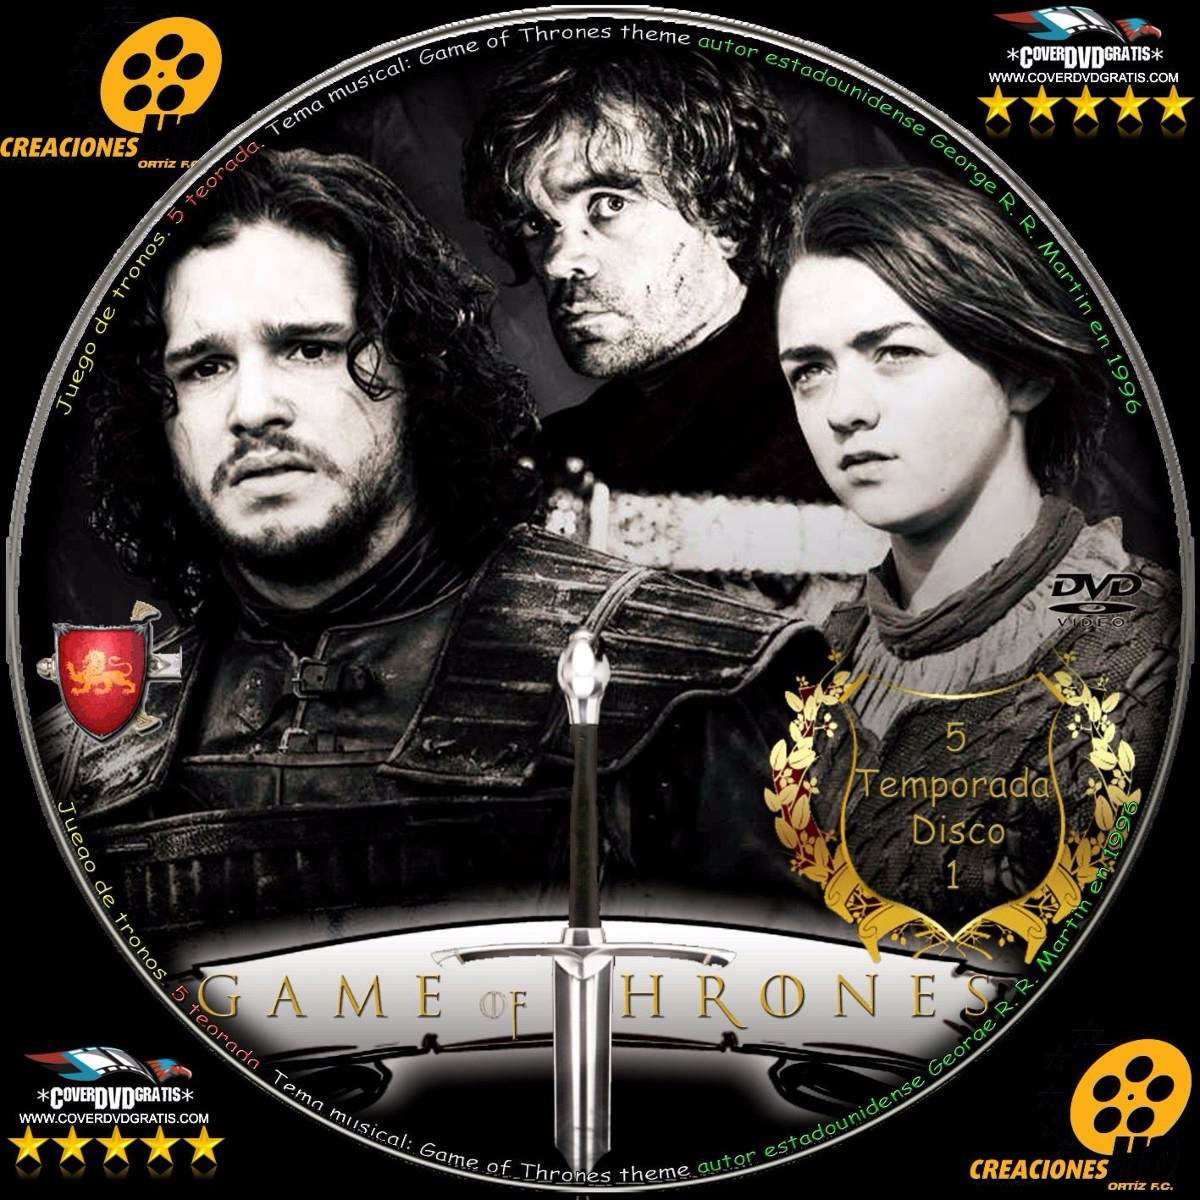 bs.to/serie/game-of-thrones